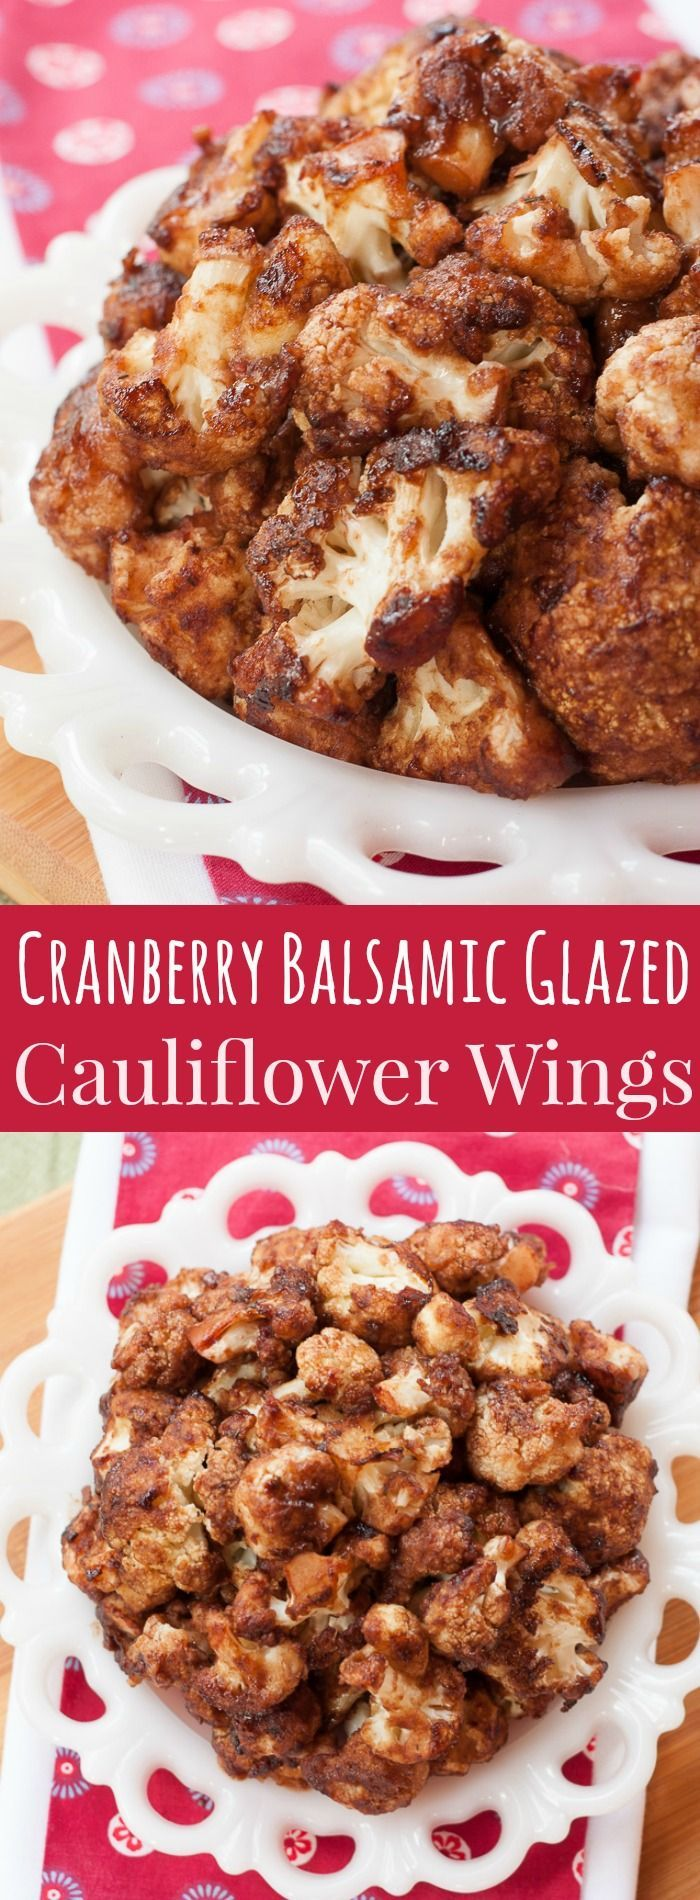 Cranberry Balsamic Glazed Cauliflower Wings - a holiday appetizer or side dish or a way to use up leftover cranberry sauce from Thanksgiving or Christmas